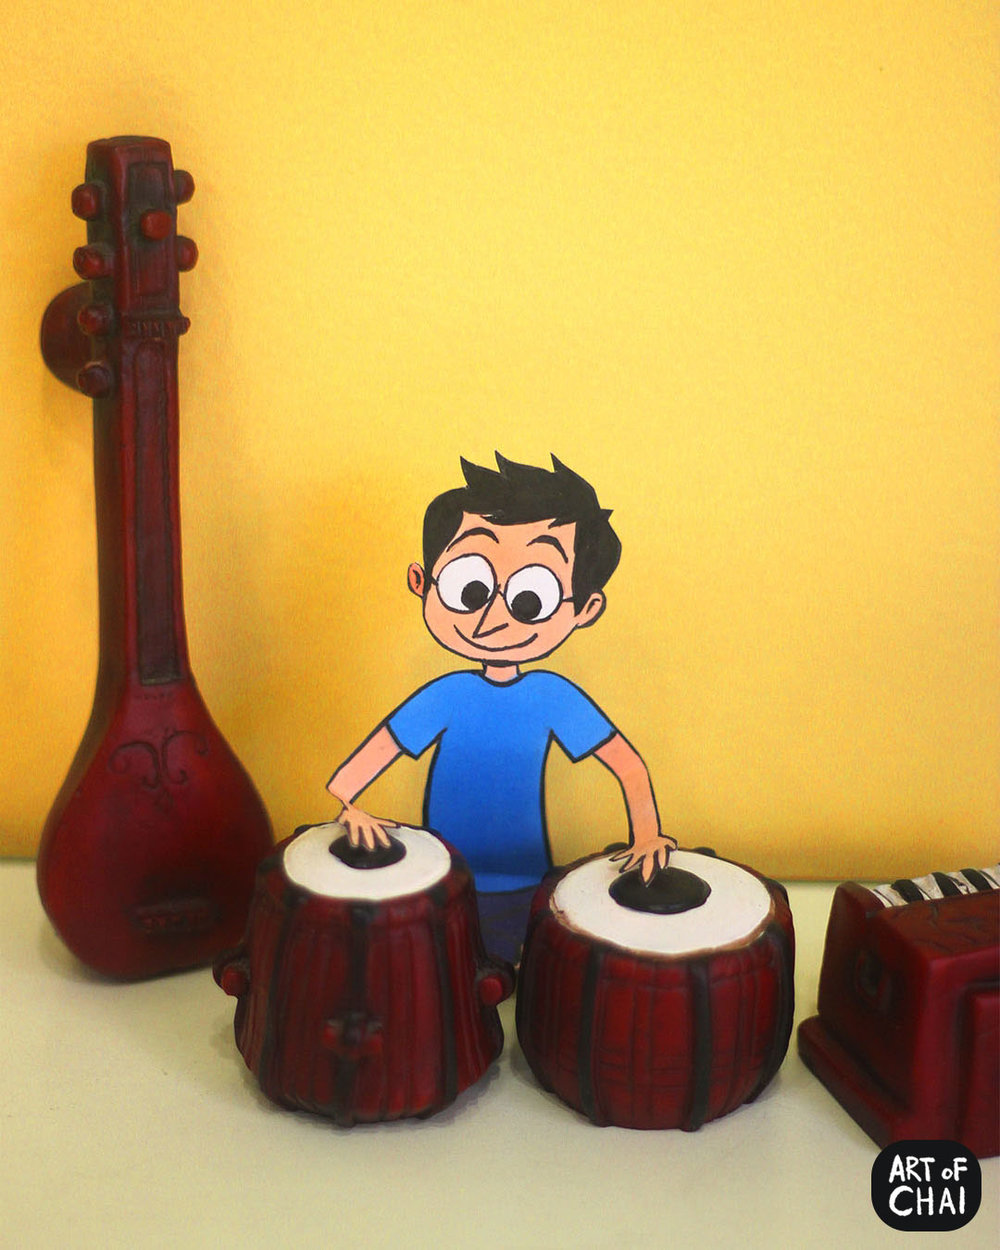 Chai trying out the tabla on the occasion of World Music Day.